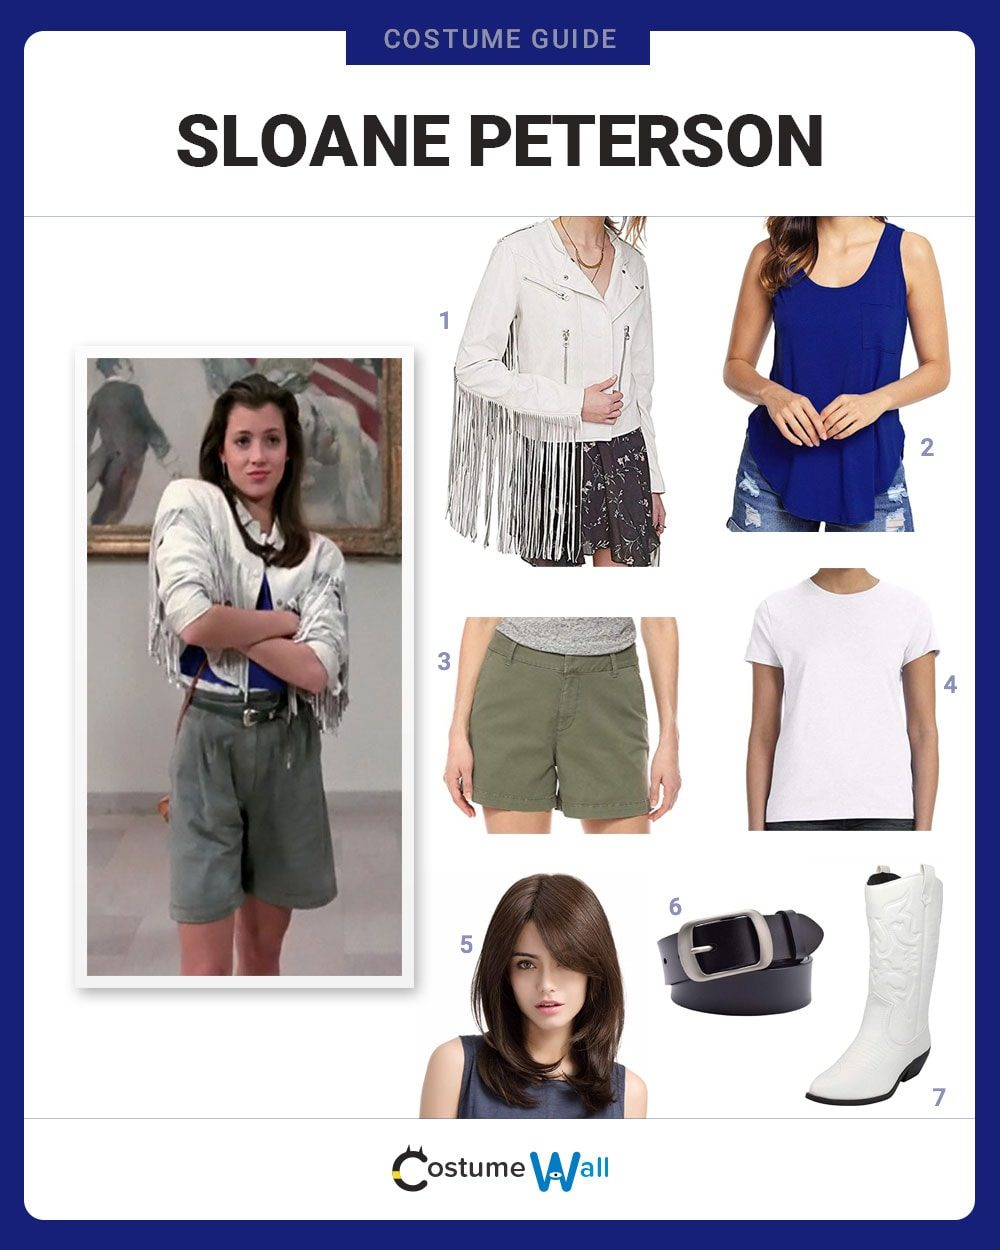 Sloane Peterson Costume Guide